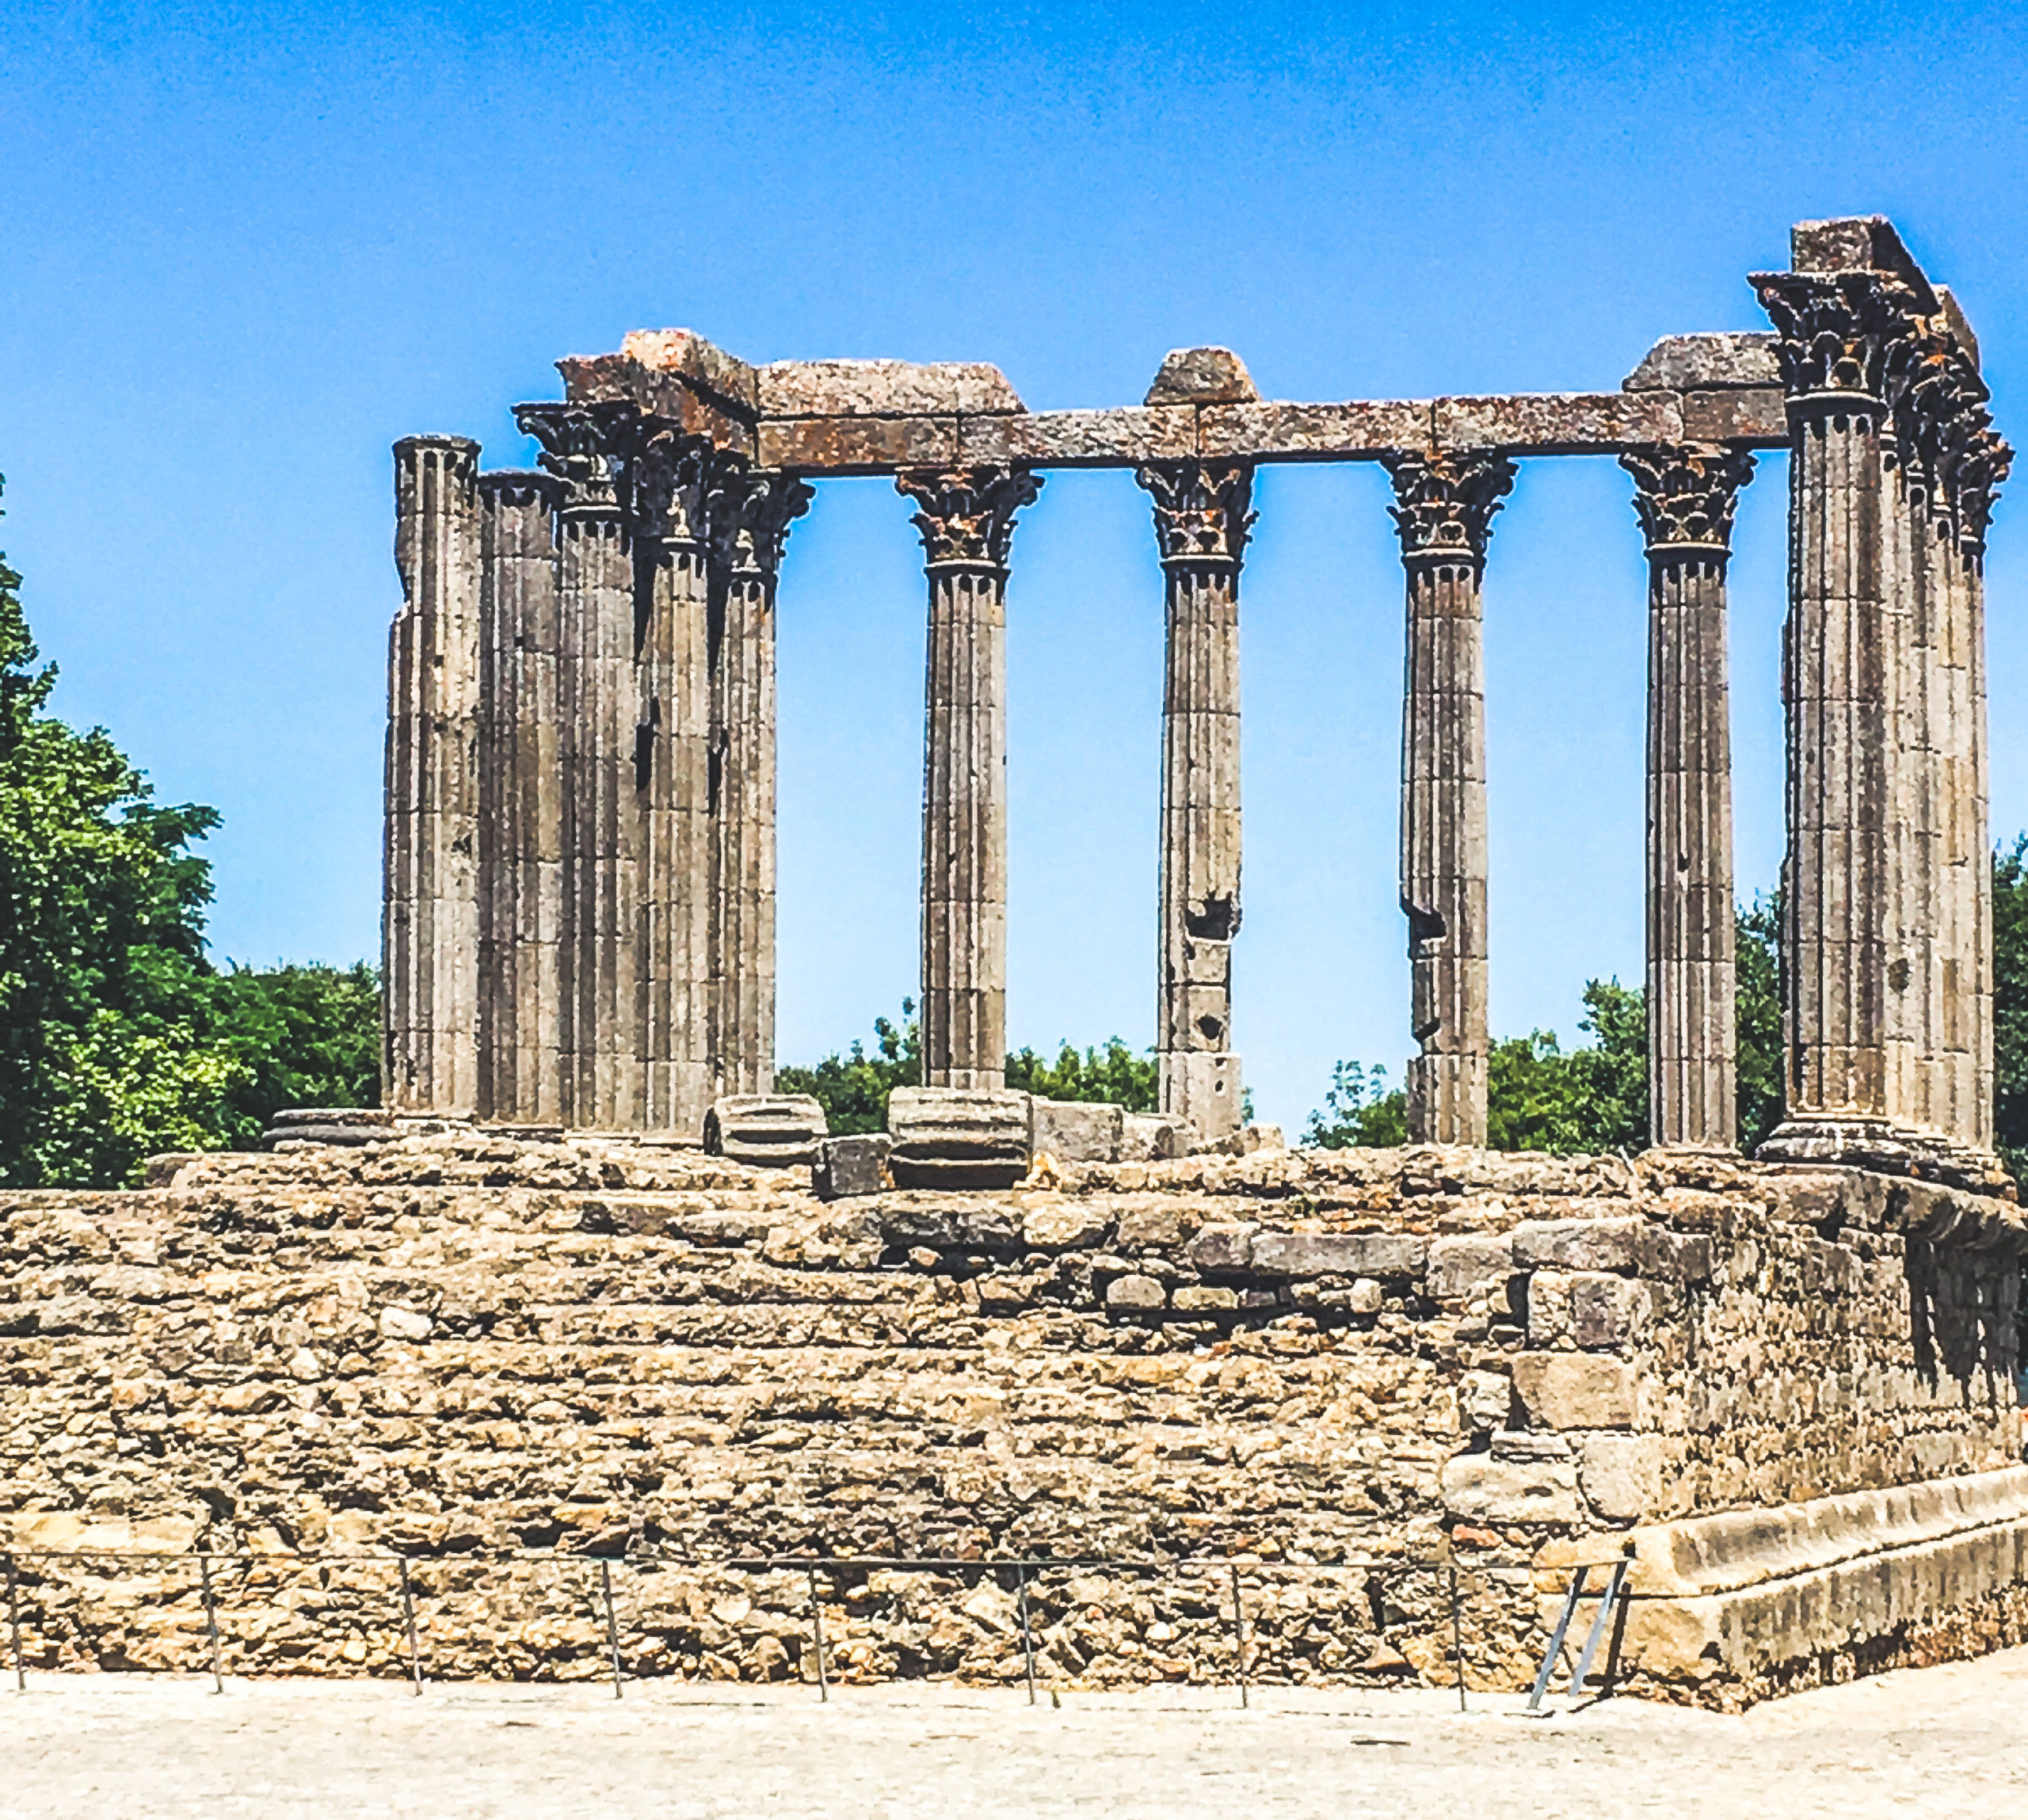 It's not Greek, exactly. But it makes you think of ancient times, no? Picture of some Roman Ruins - The Temple of Evora in Portugal